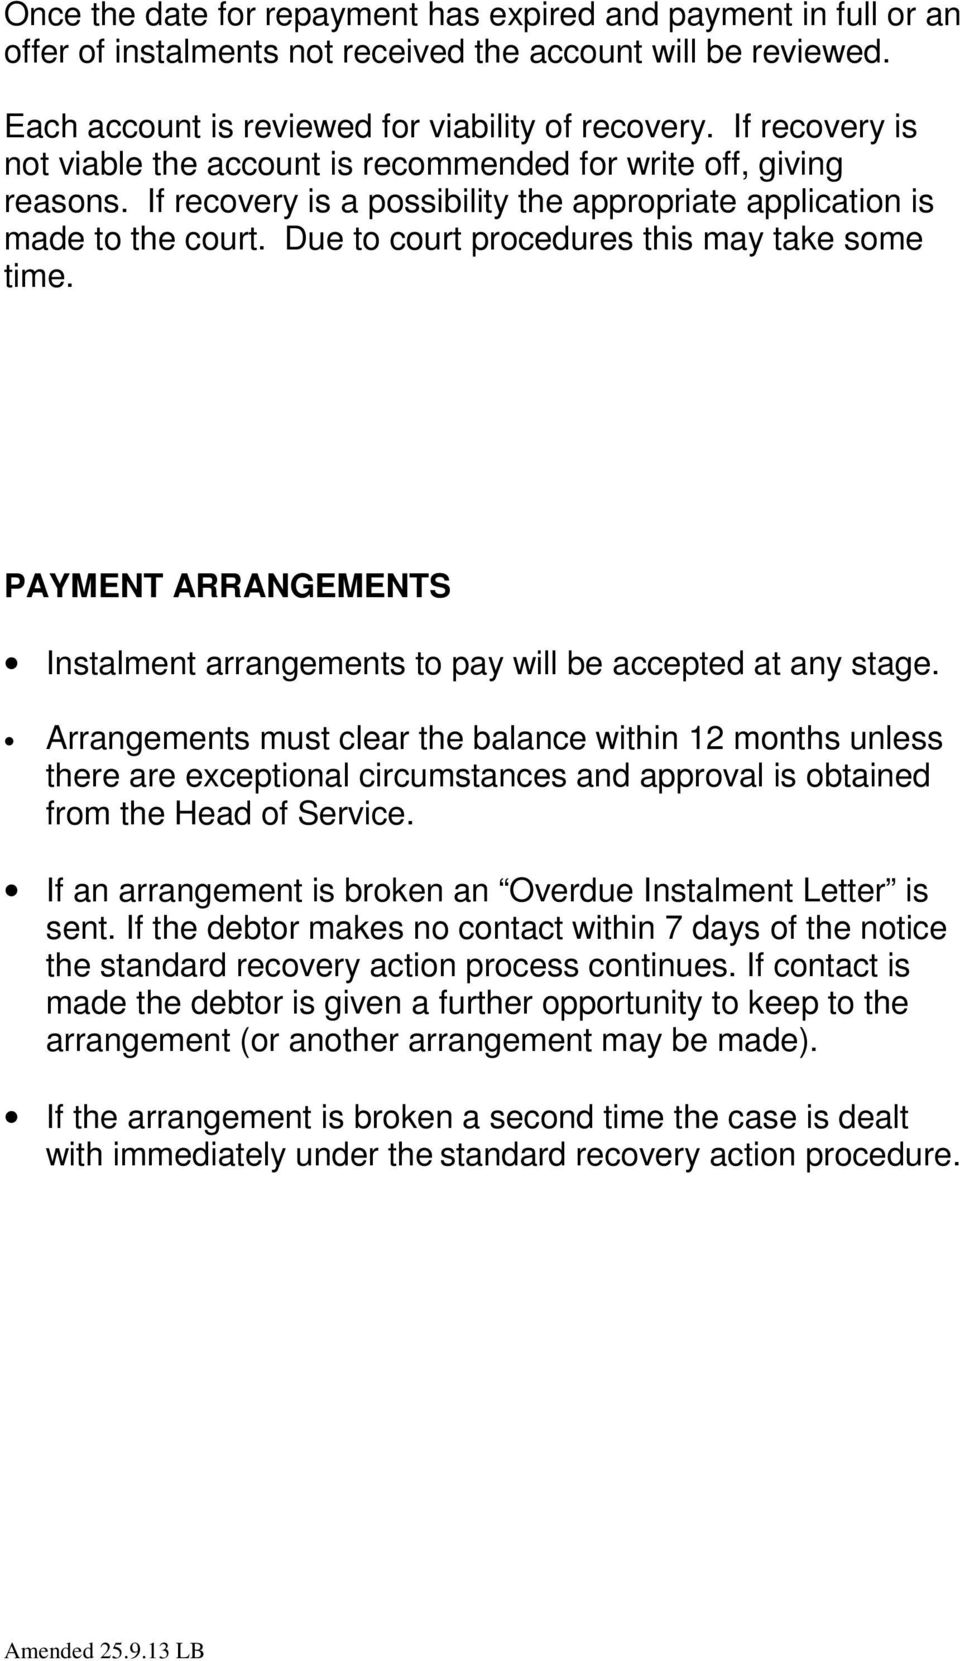 Due to court procedures this may take some time. PAYMENT ARRANGEMENTS Instalment arrangements to pay will be accepted at any stage.